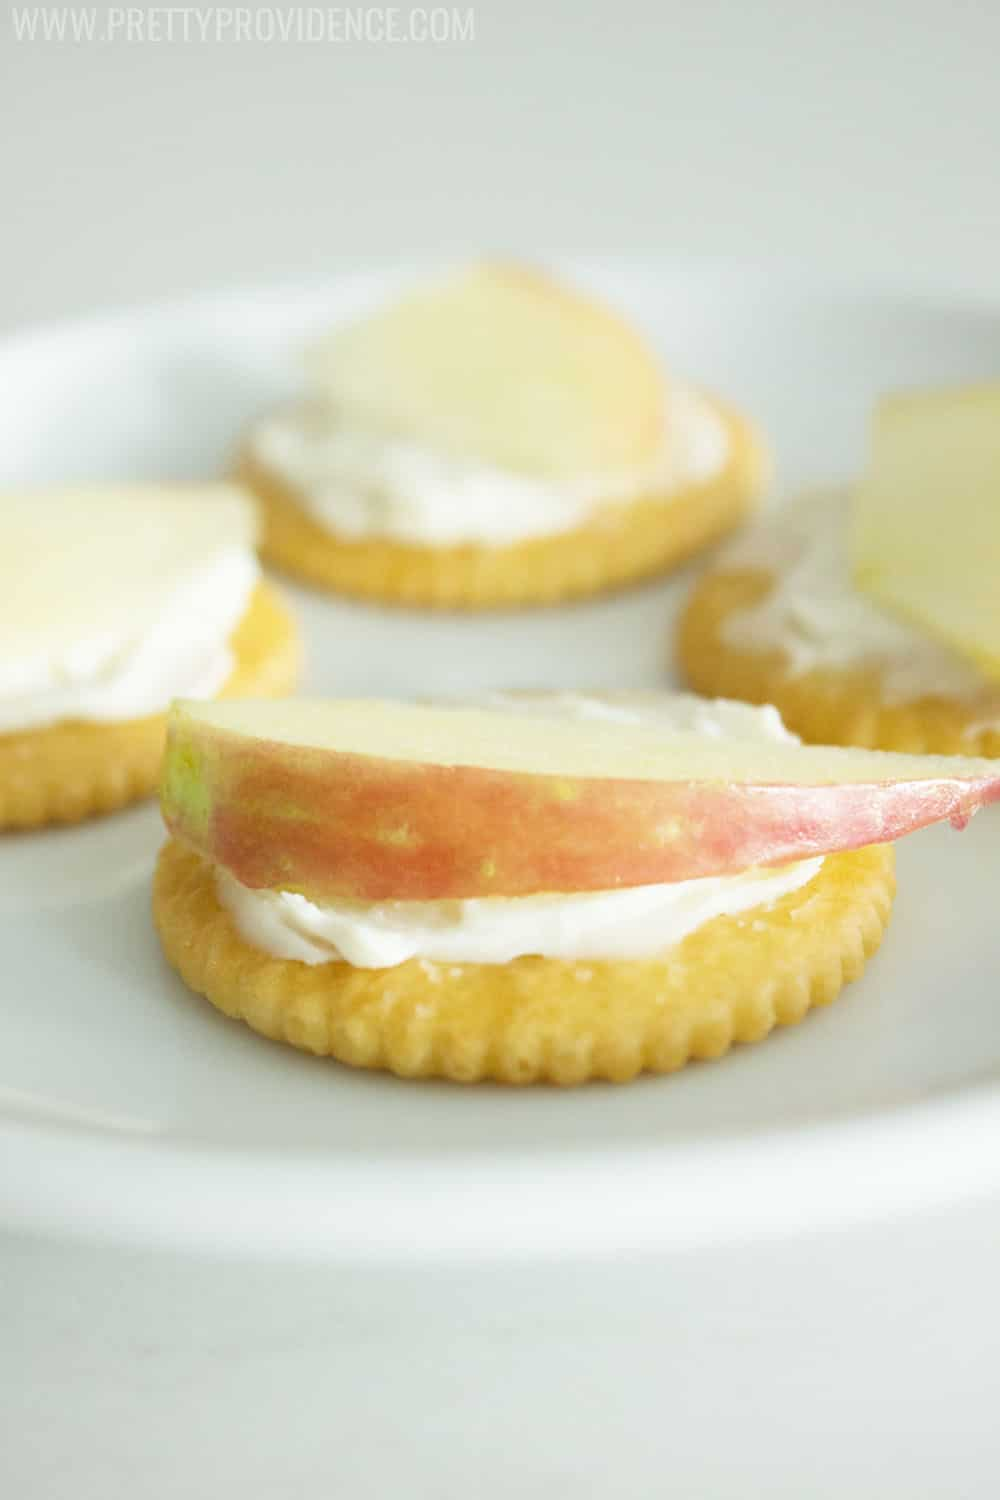 There is literally NOTHING easier or more delicious than these RITZwich recipes! Whether its for a big party or gathering or just afternoon snacking with my kids, these are always a major hit!